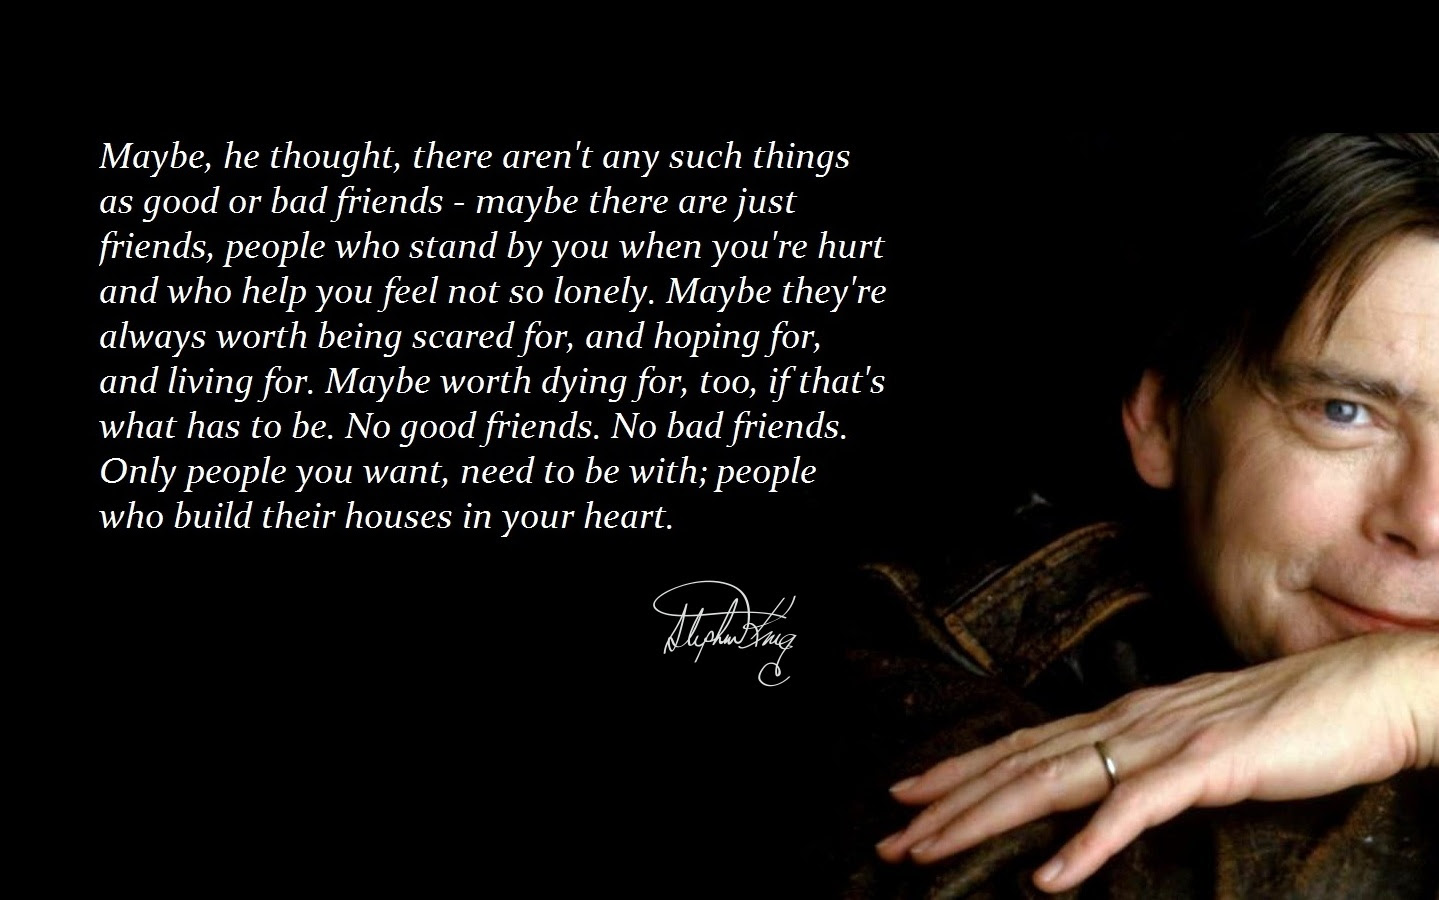 Maybe There Are Just Friends Stephen King 1440x900 Quotesporn